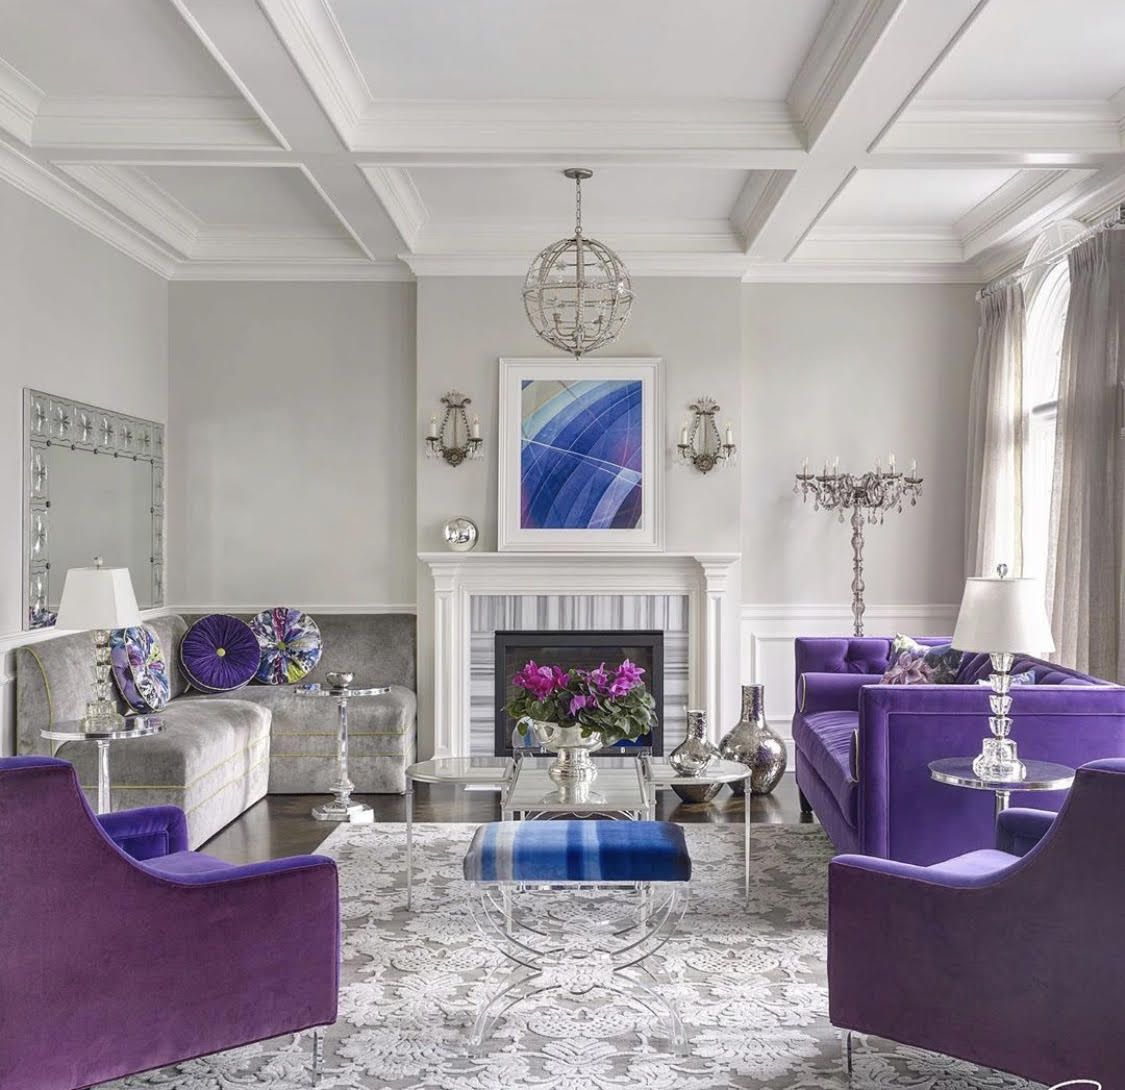 Stunning Glam Living Room Decor In White And Purple With Purple Velvet Sofa Glam Living Room Velvet Sofa Living Room Purple Dining Room Purple and white living rooms